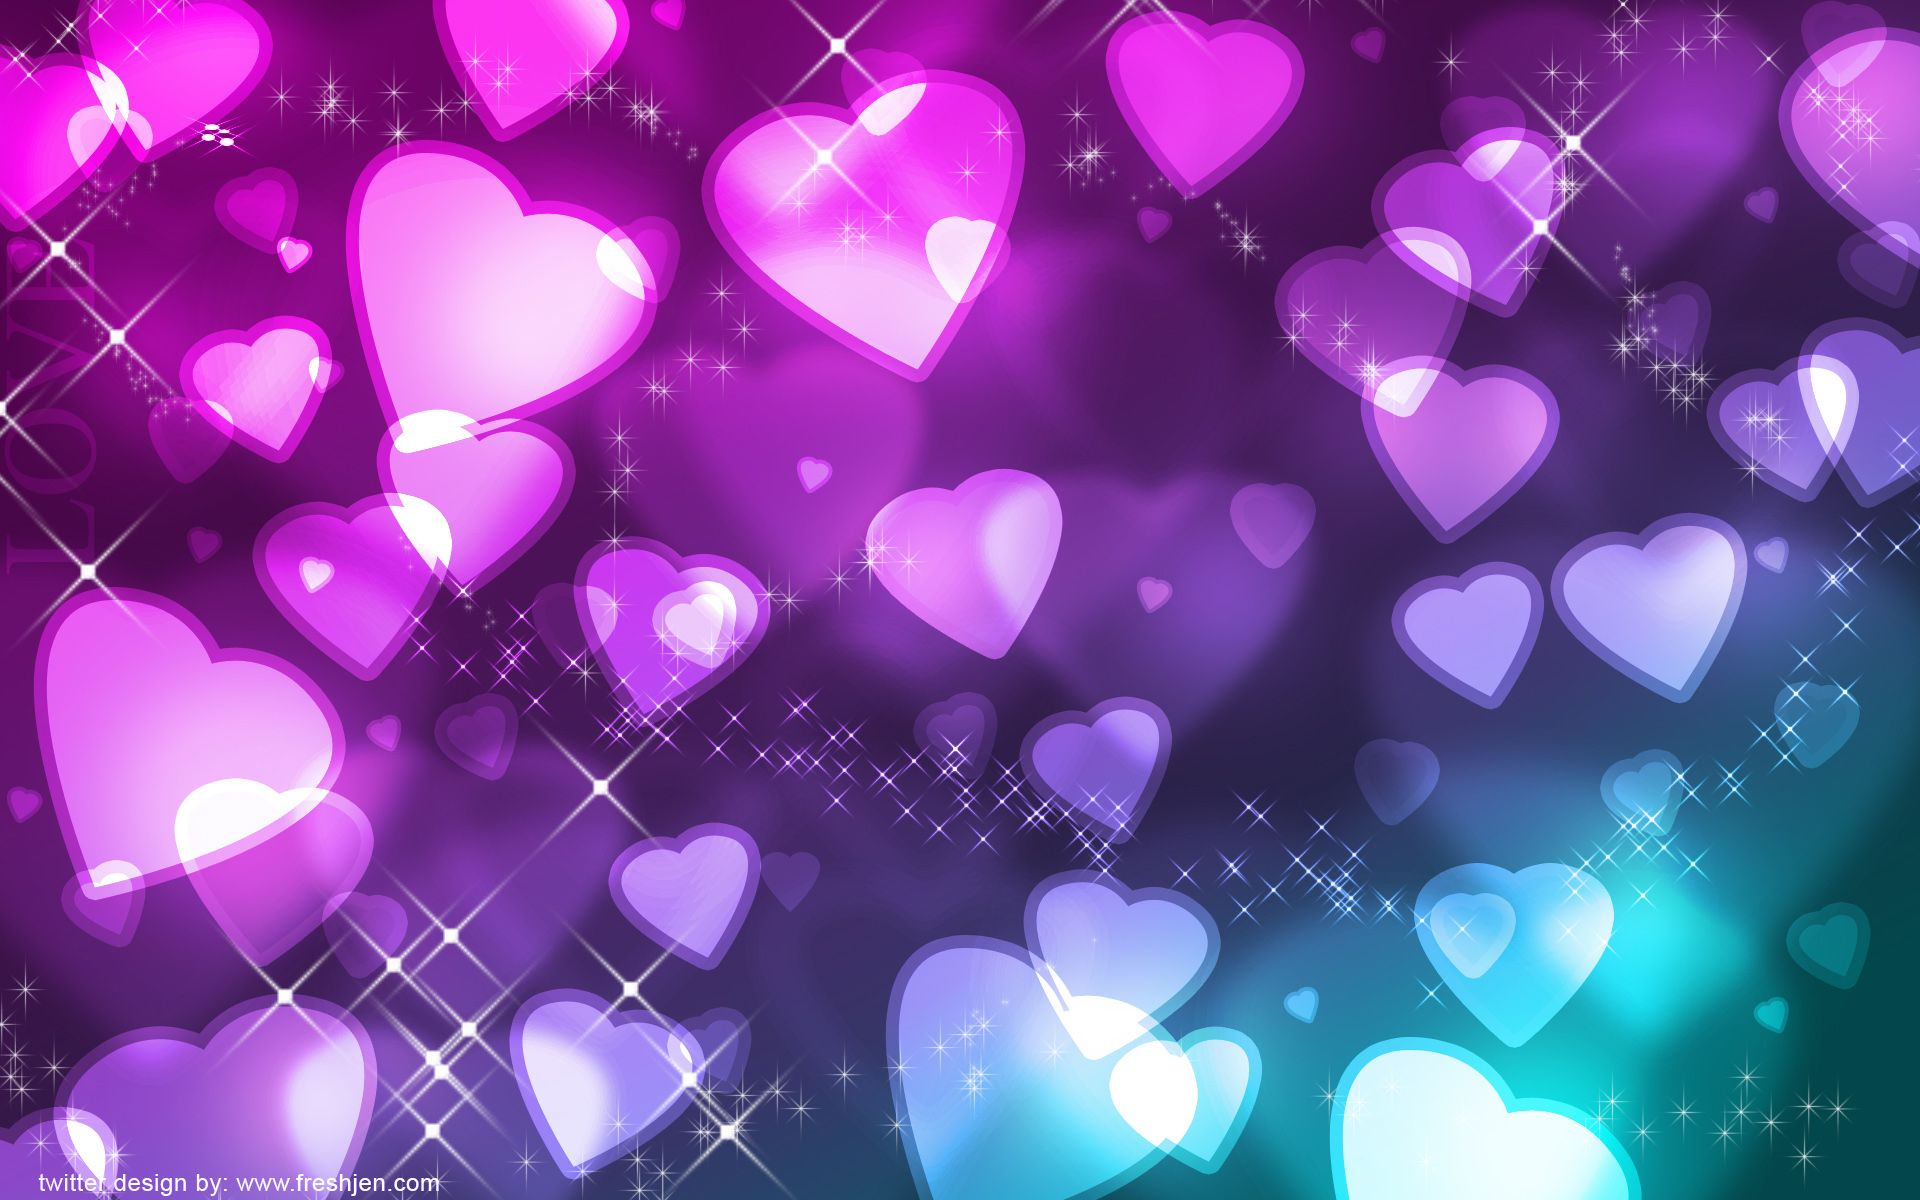 FREE twitter backgrounds wallpapers for barbi Heart wallpaper 1920x1200